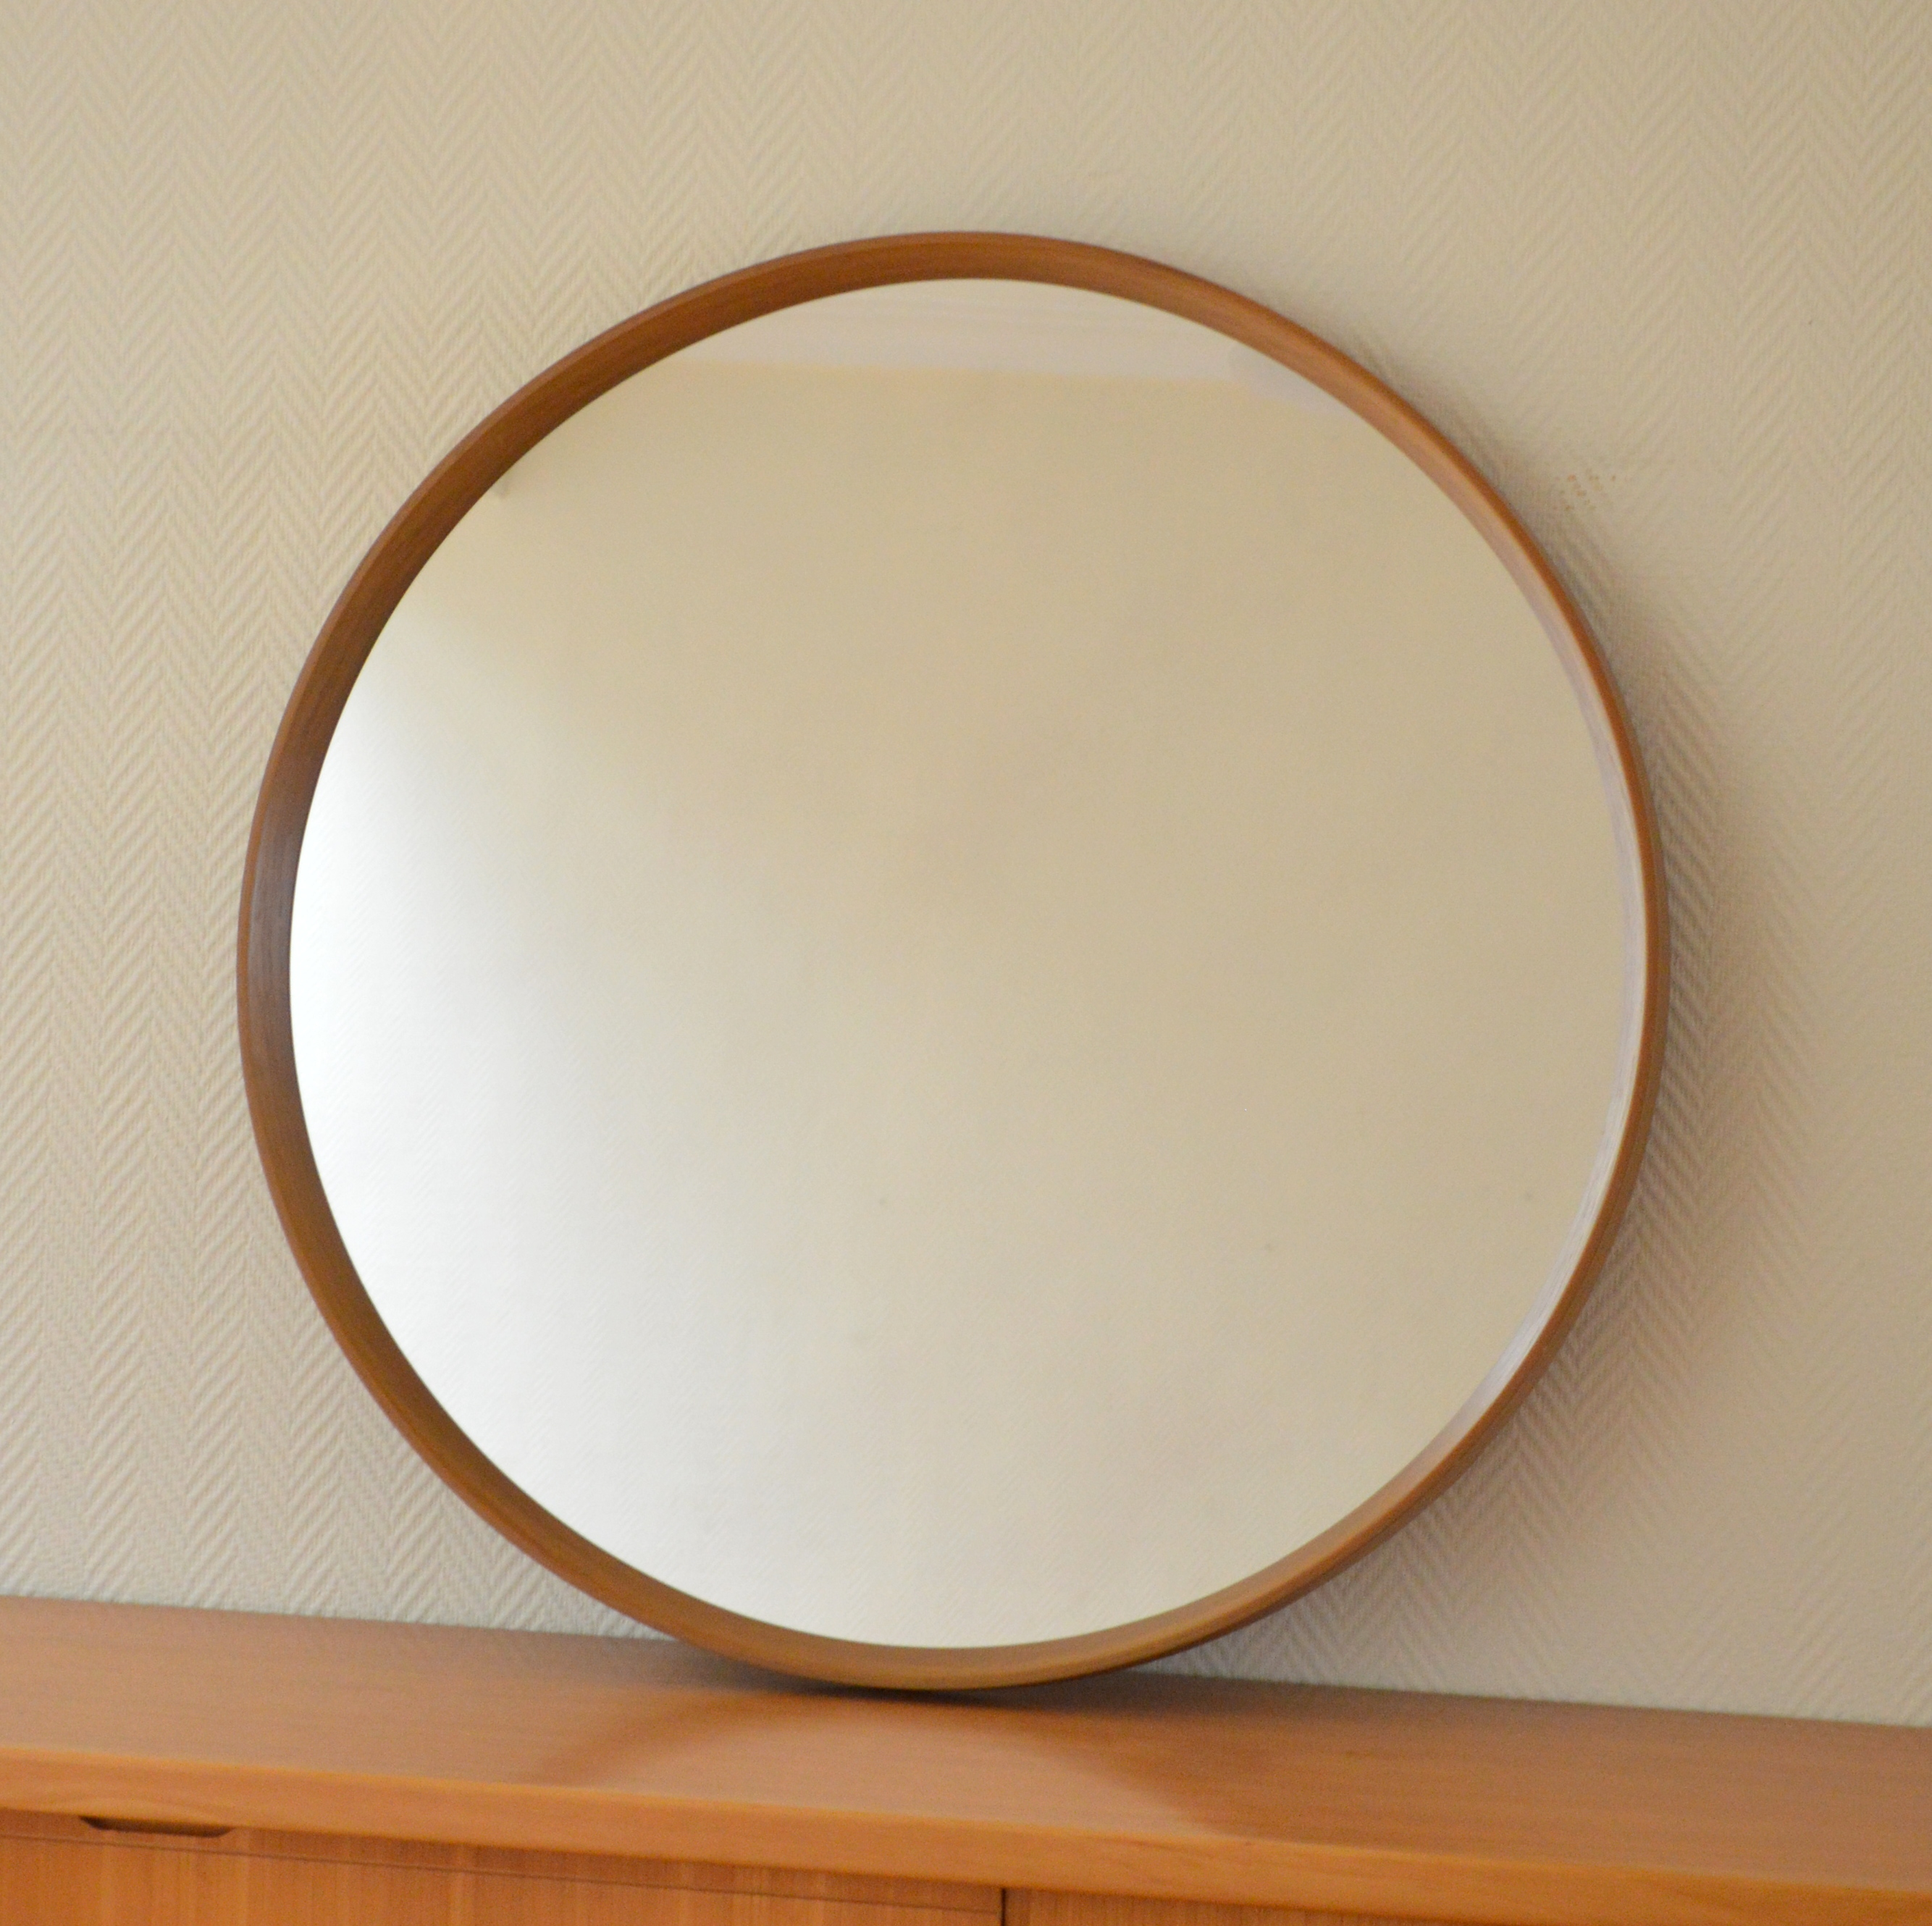 Grand miroir rond vintage for Miroir design rond